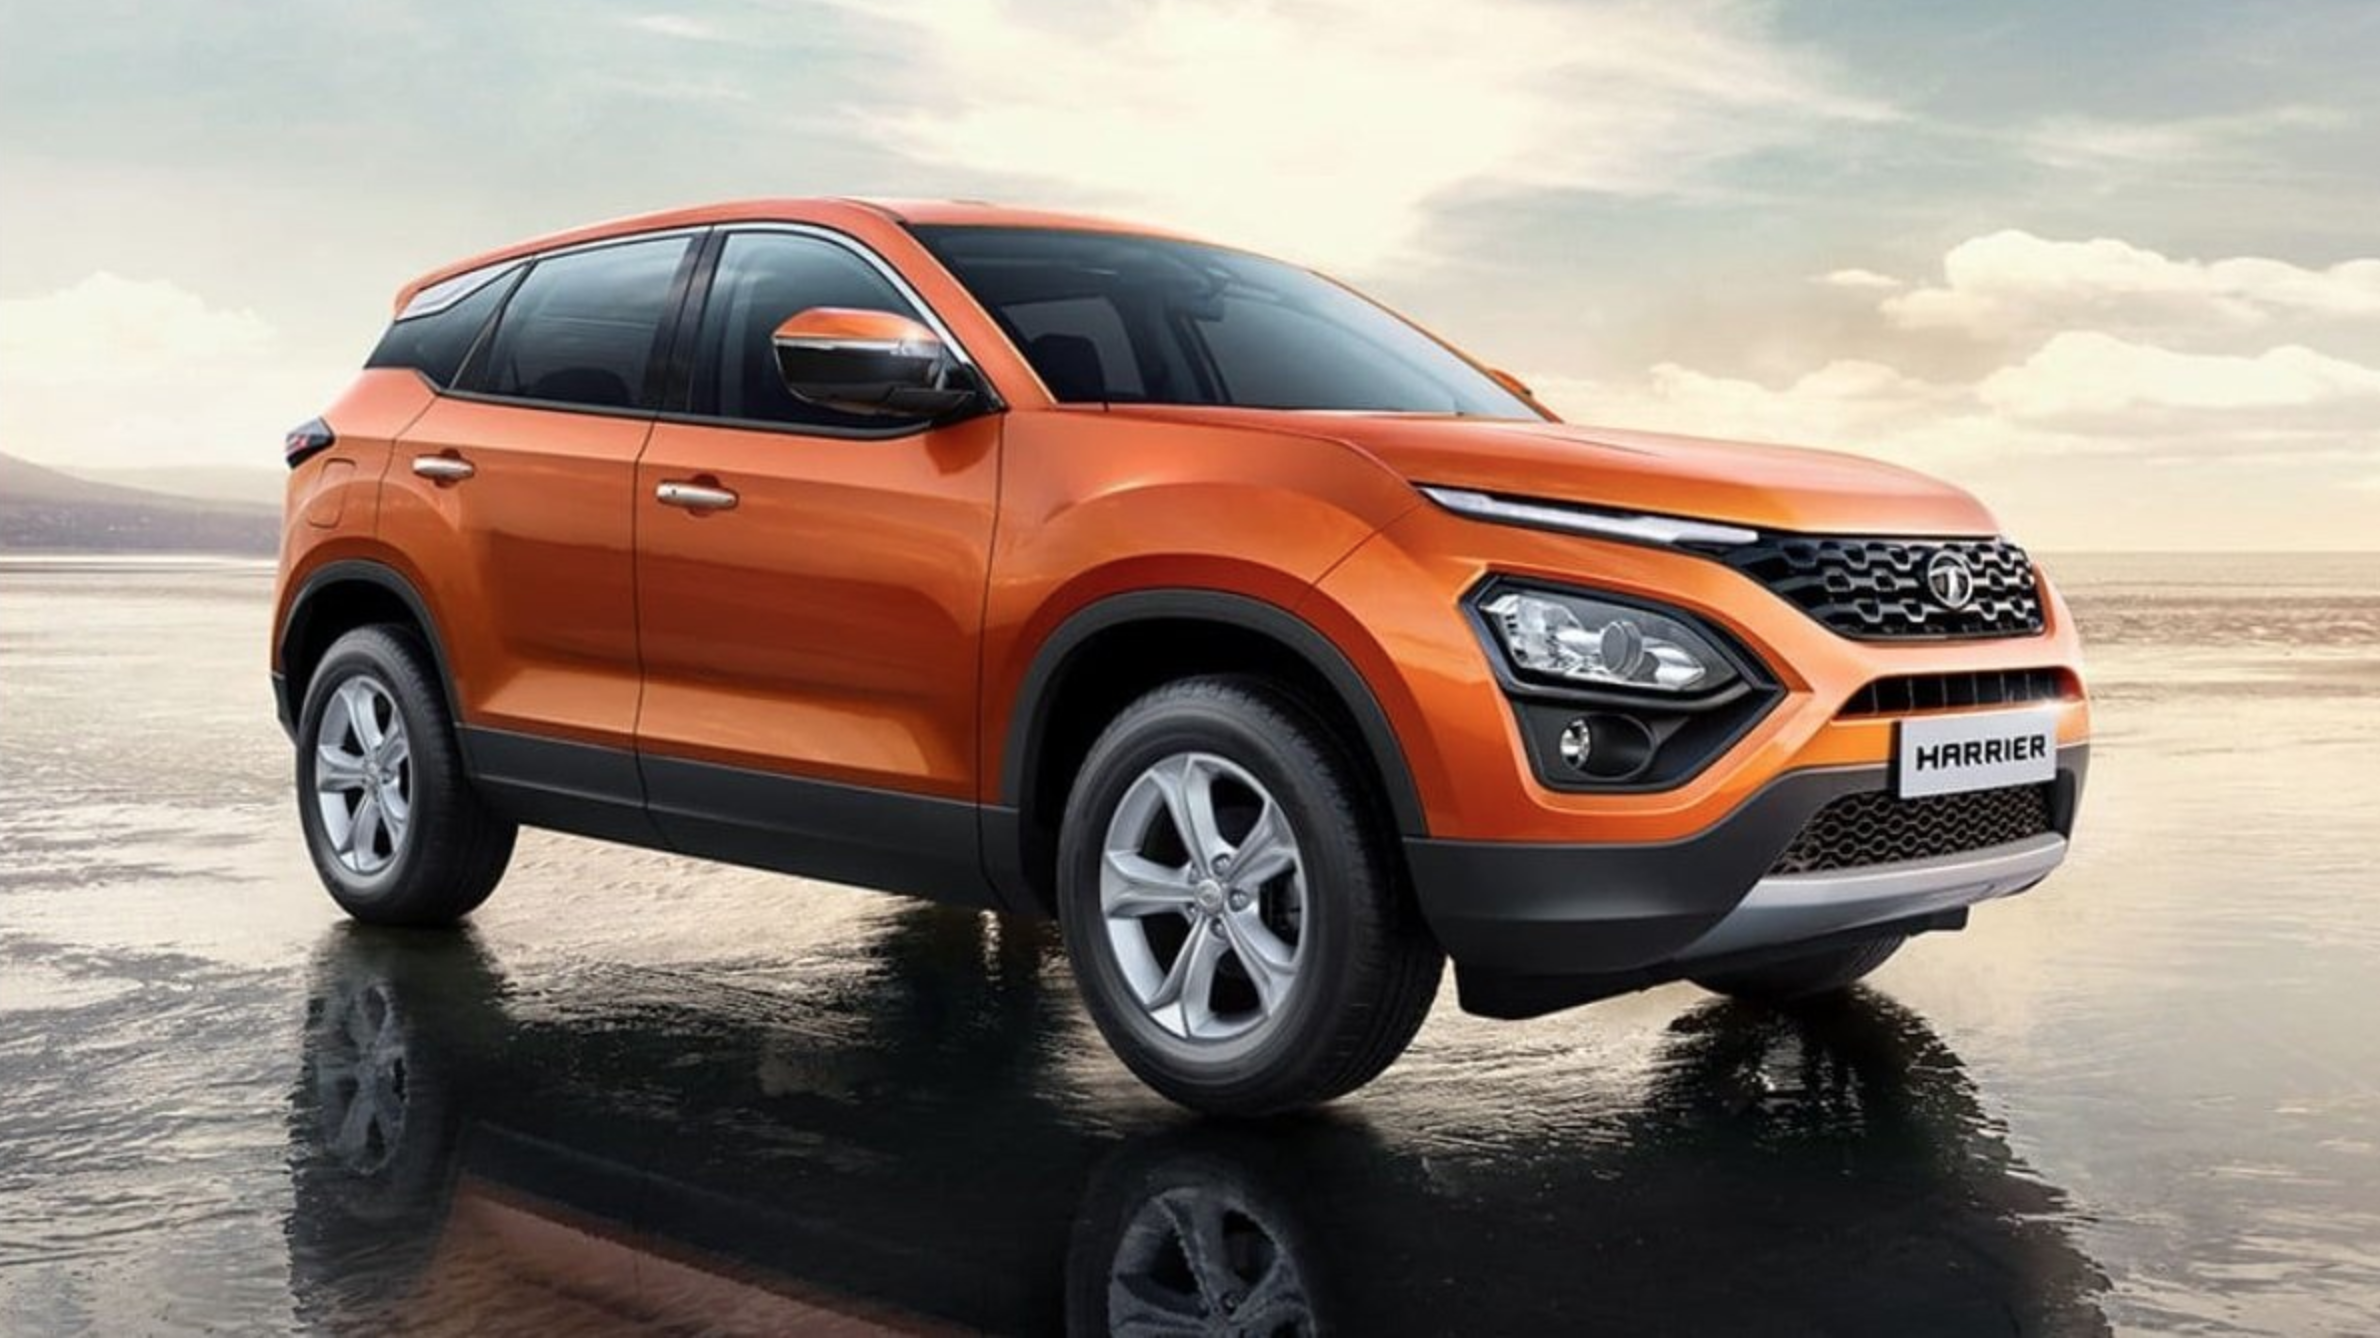 2019 Tata Harrier